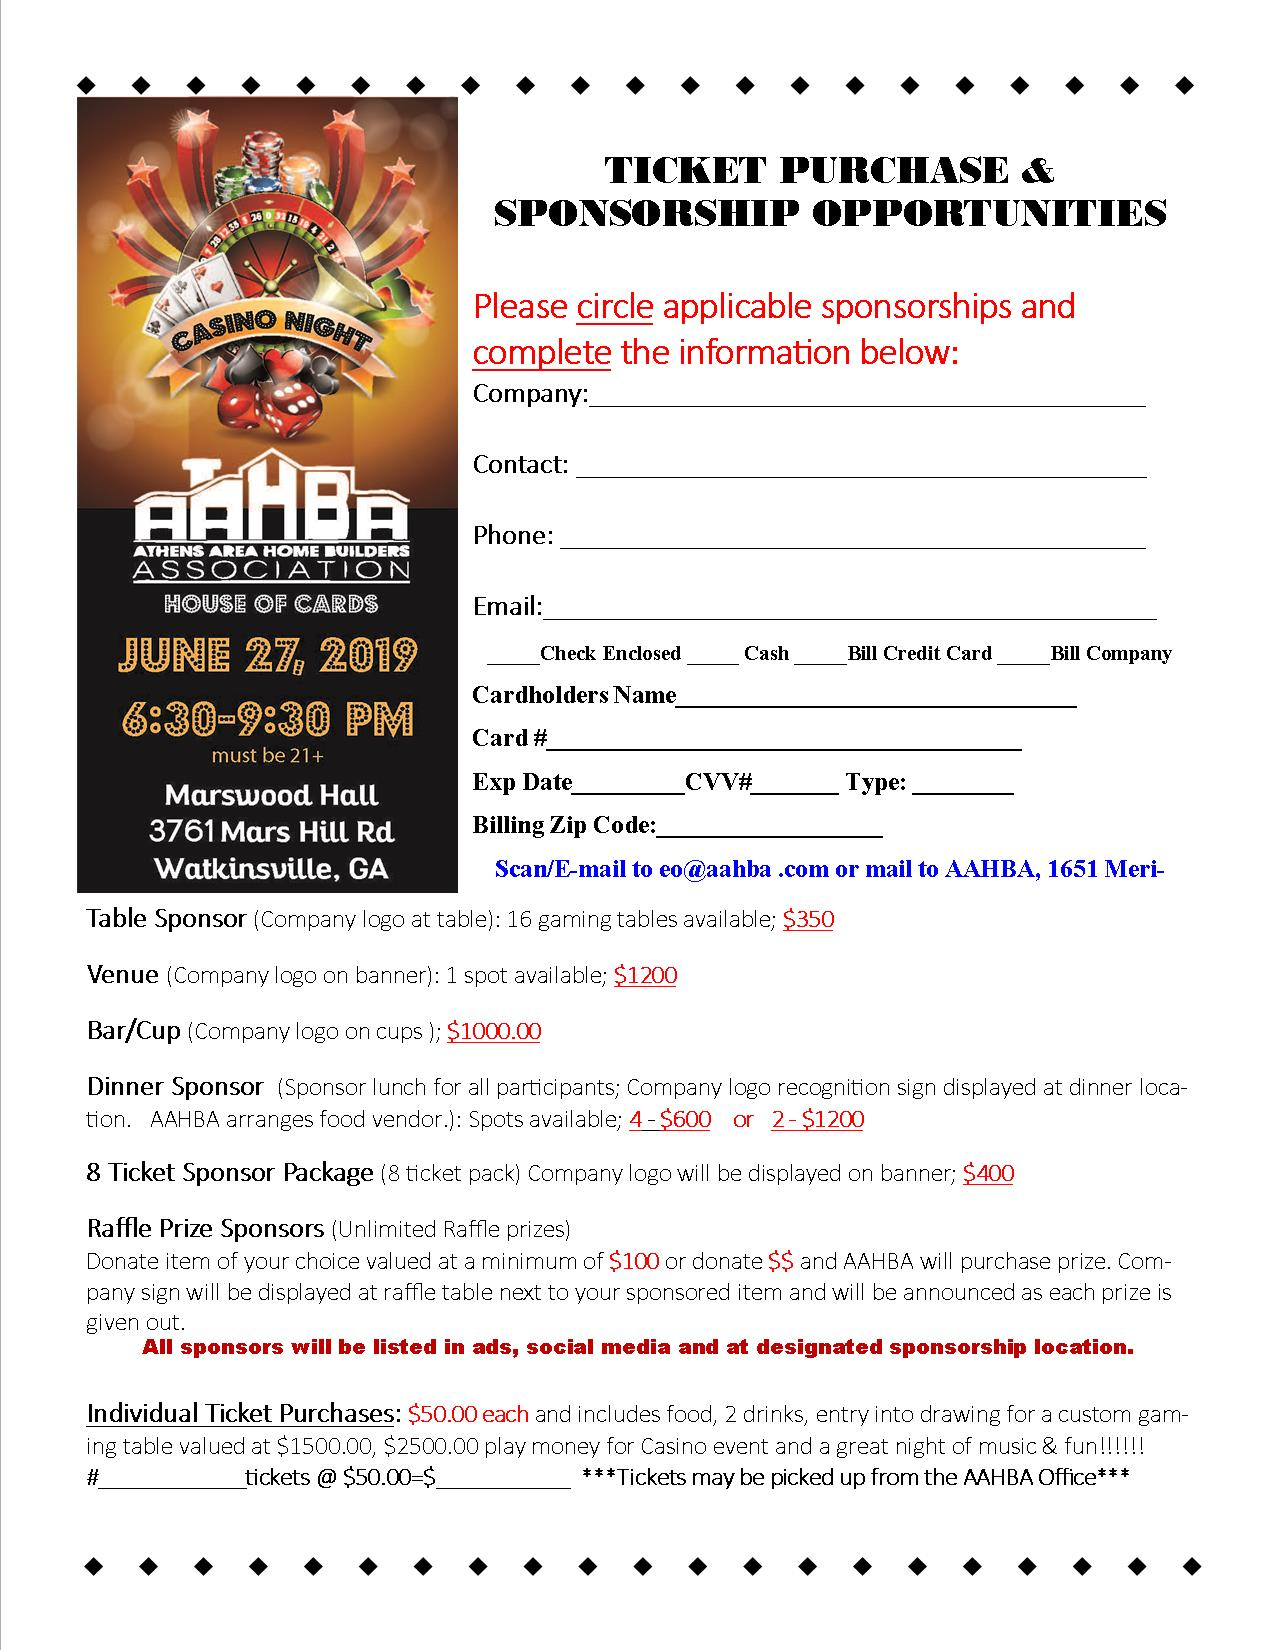 Casino Night Sponsorship & Ticket Purchase Flyer